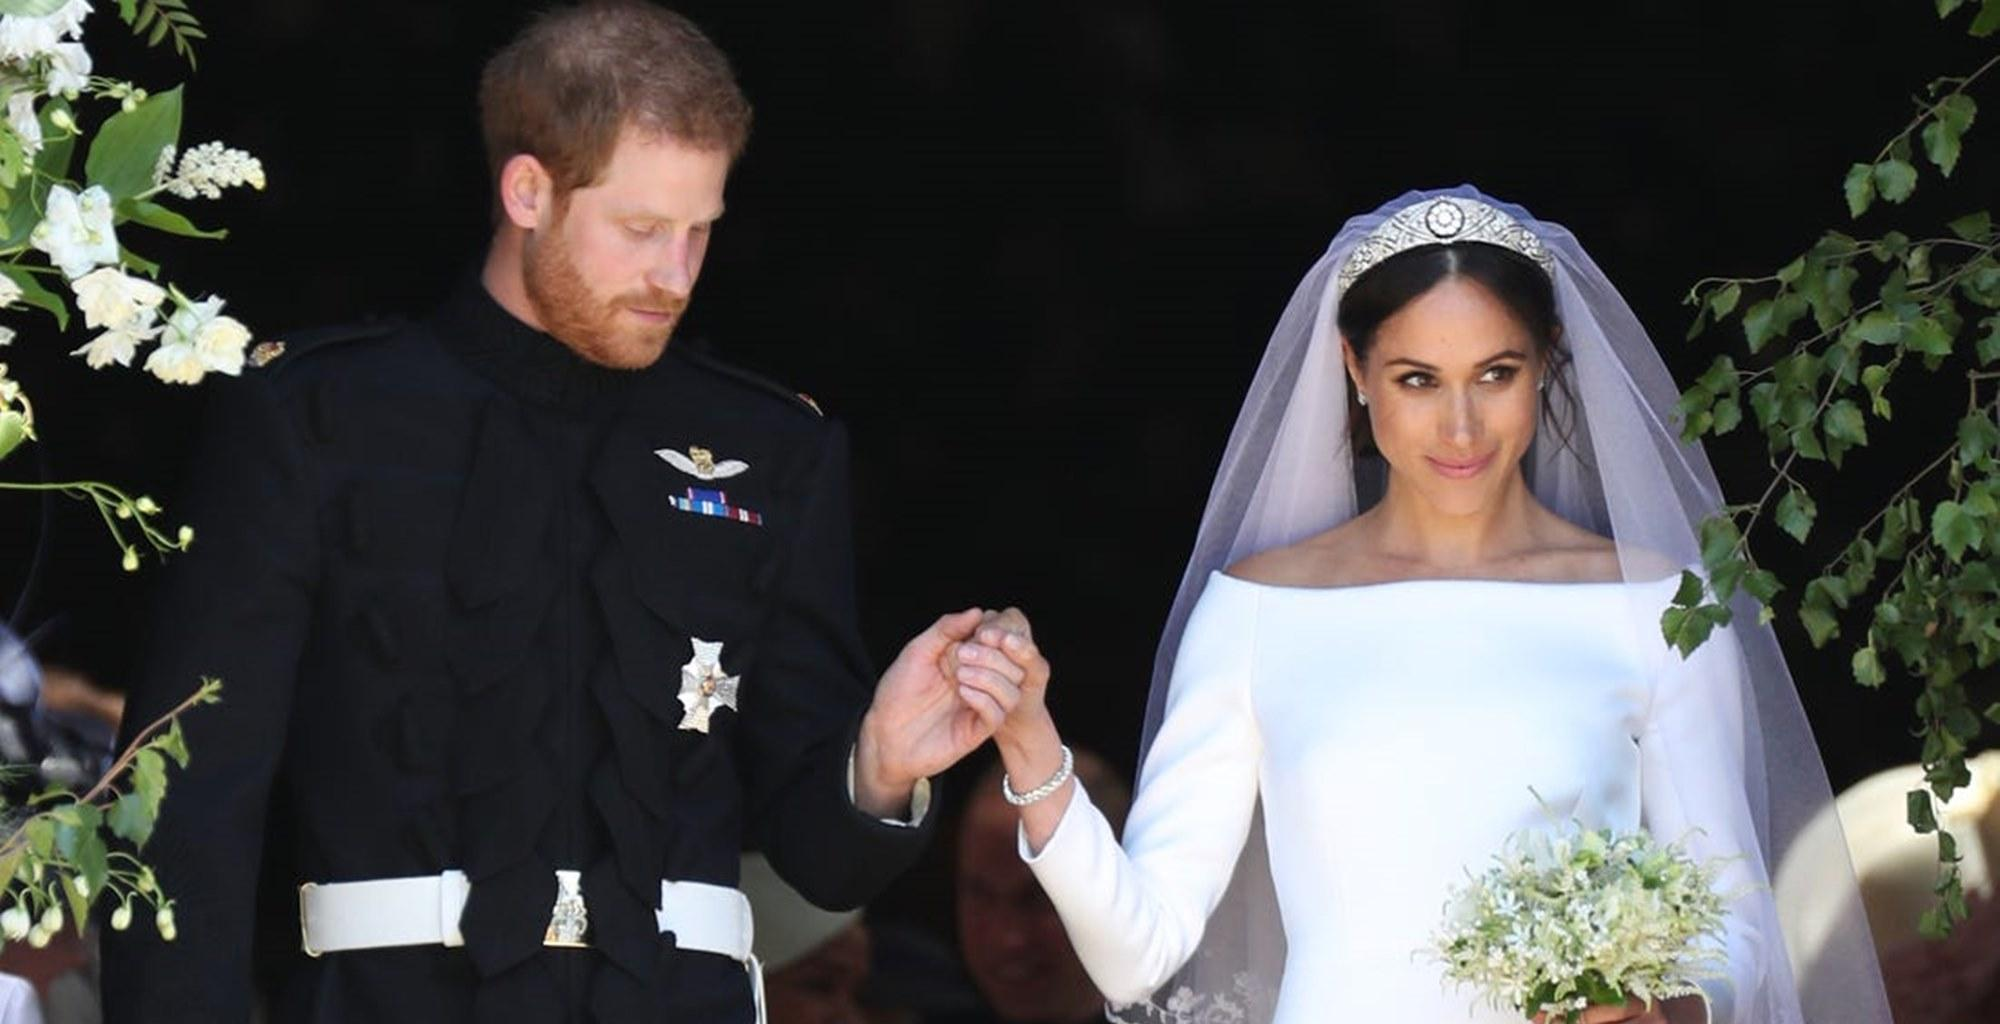 Meghan Markle's Wedding Dress Designer, Clare Waight Keller, Shares Rare Photos And More Details About Her Iconic Gown